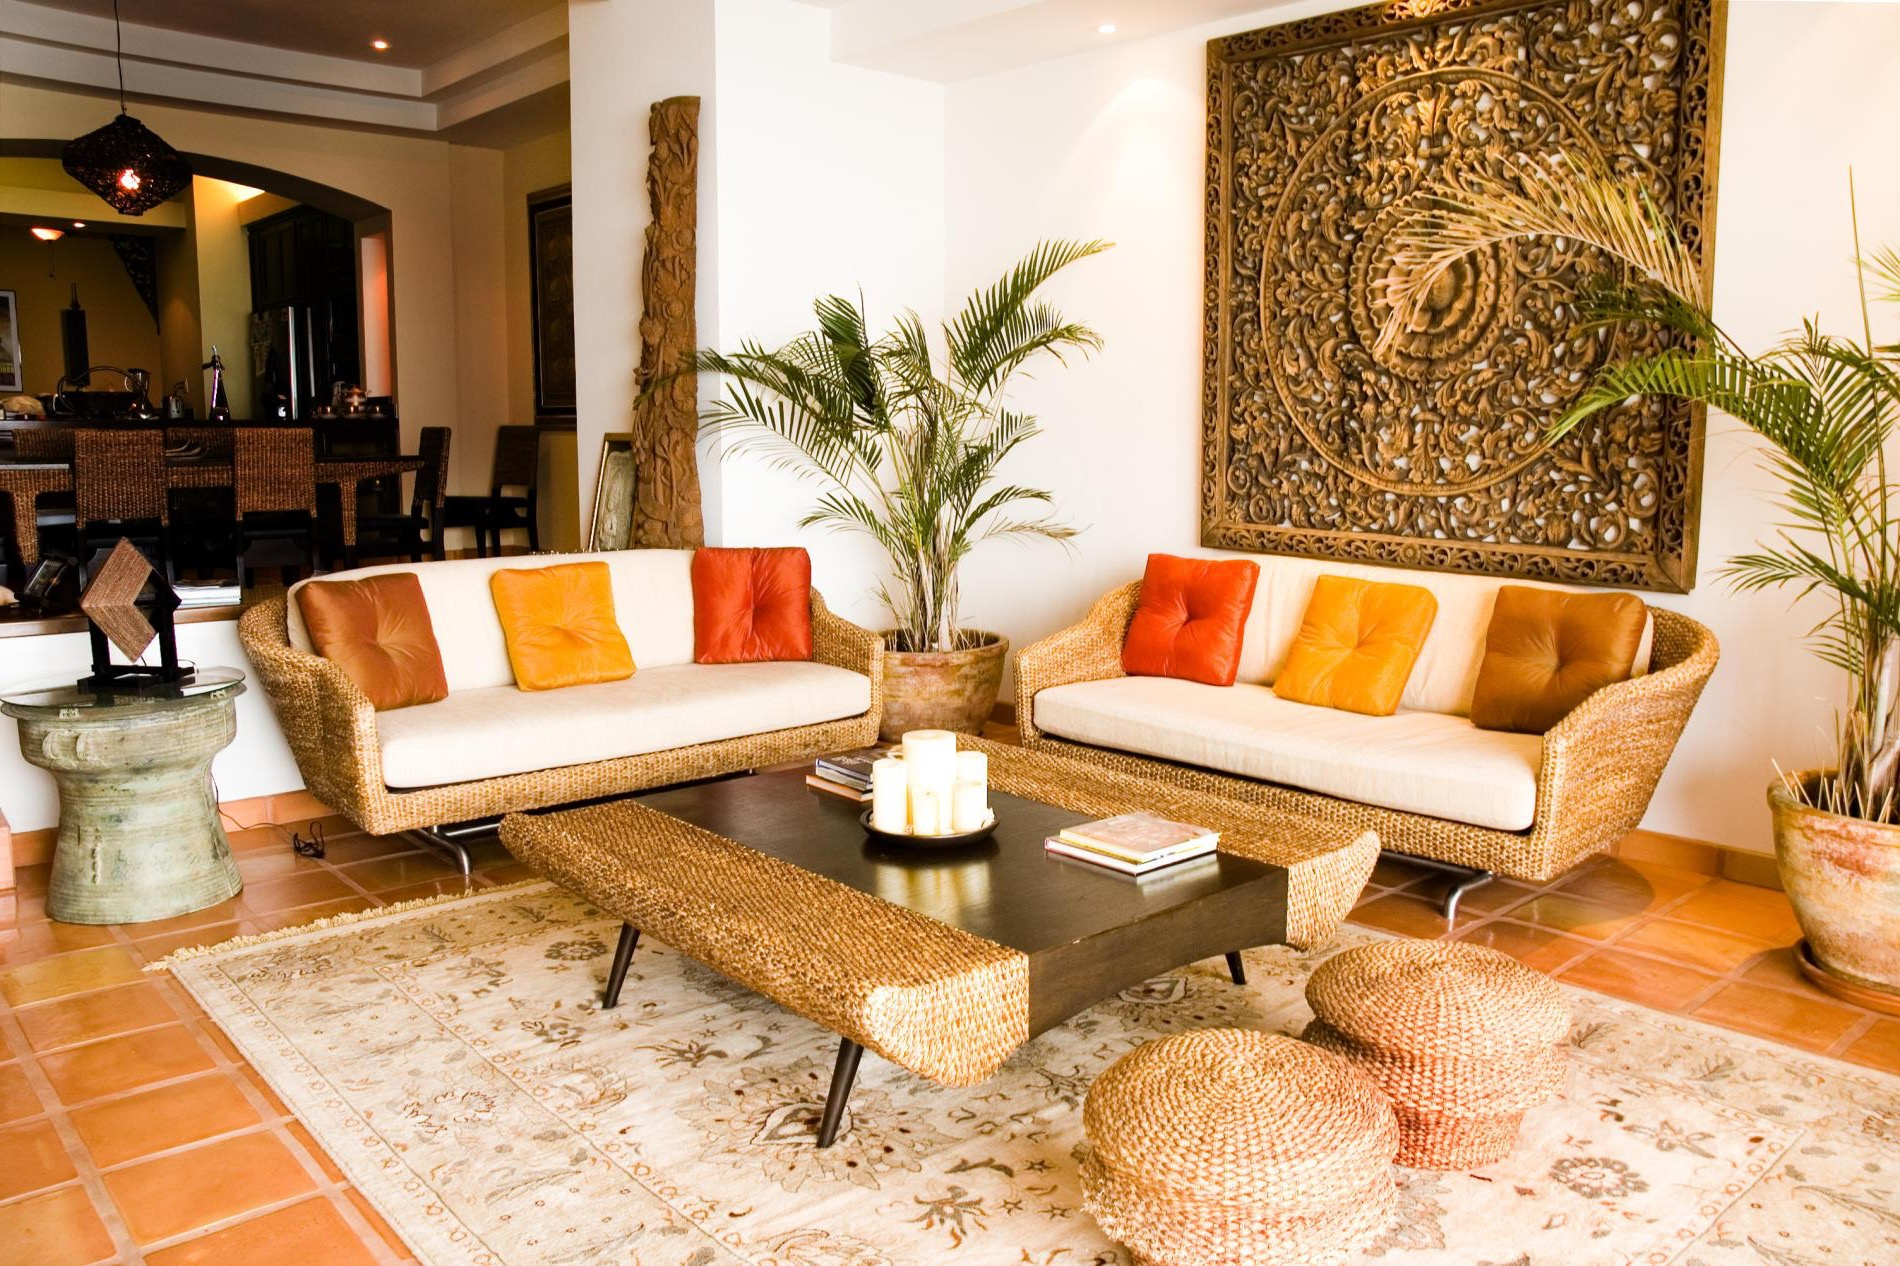 Indian Living Room Interior Decoration 14401 Living Room Ideas